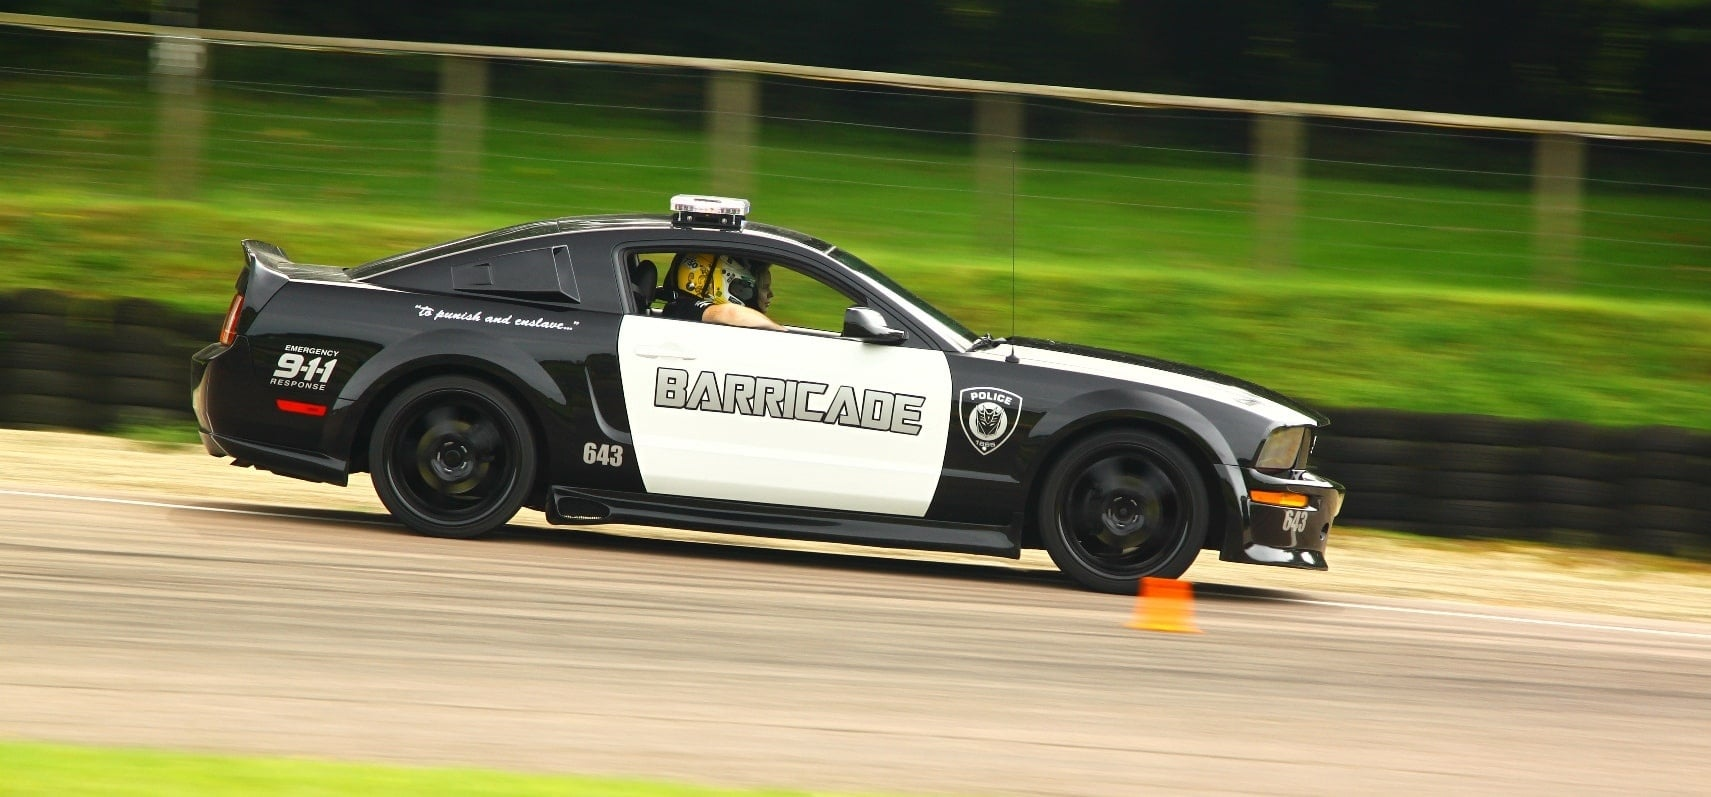 'Barricade' Mustang GT Experience-7